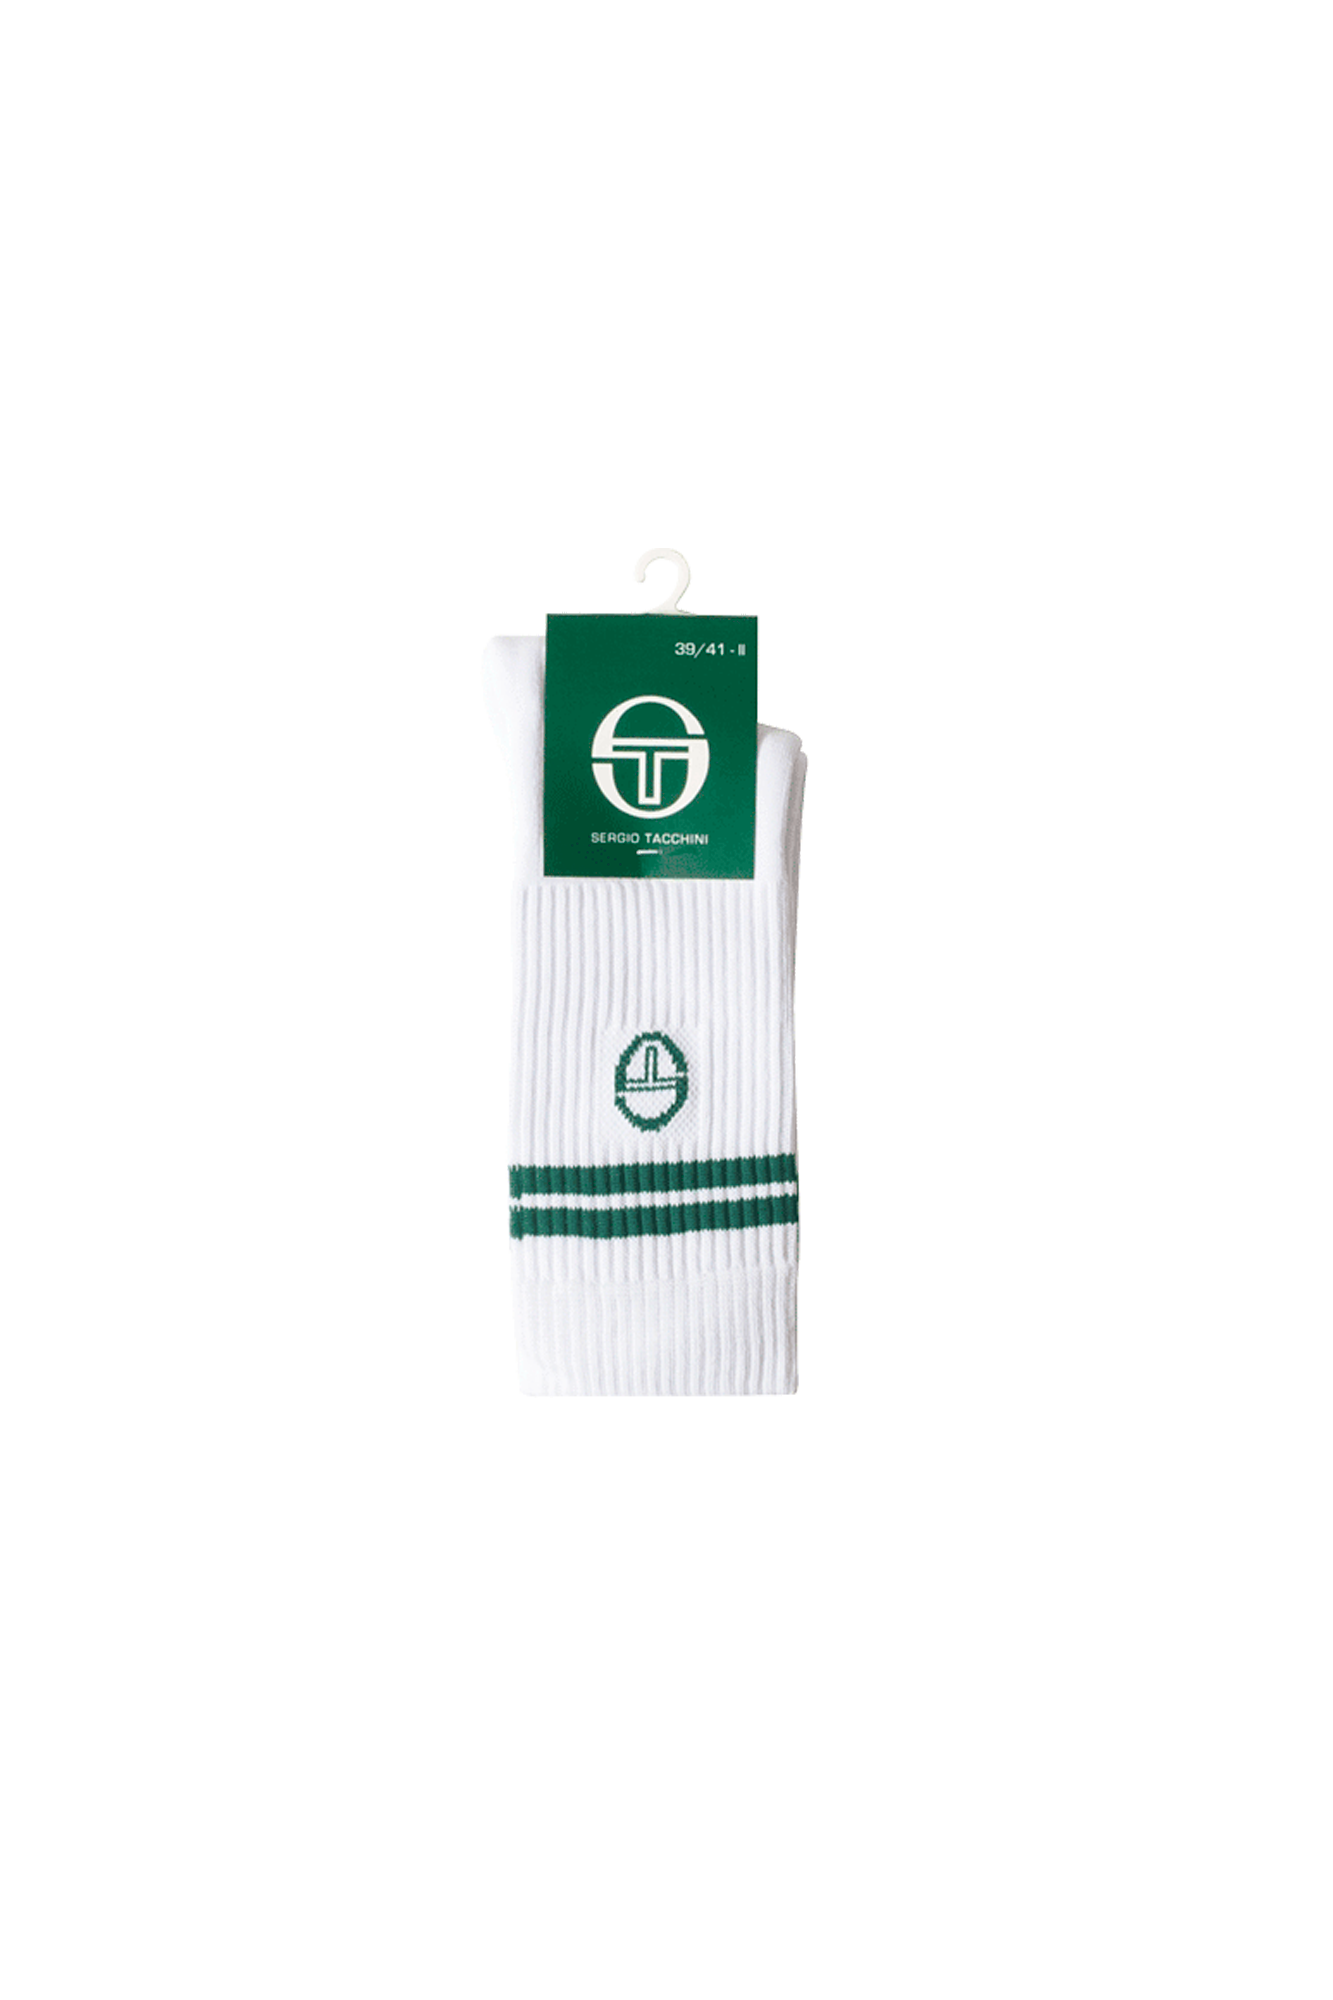 Sergio Tacchini Socks Supermac Socks White 37884101#000#C0006#XS/S - One Block Down